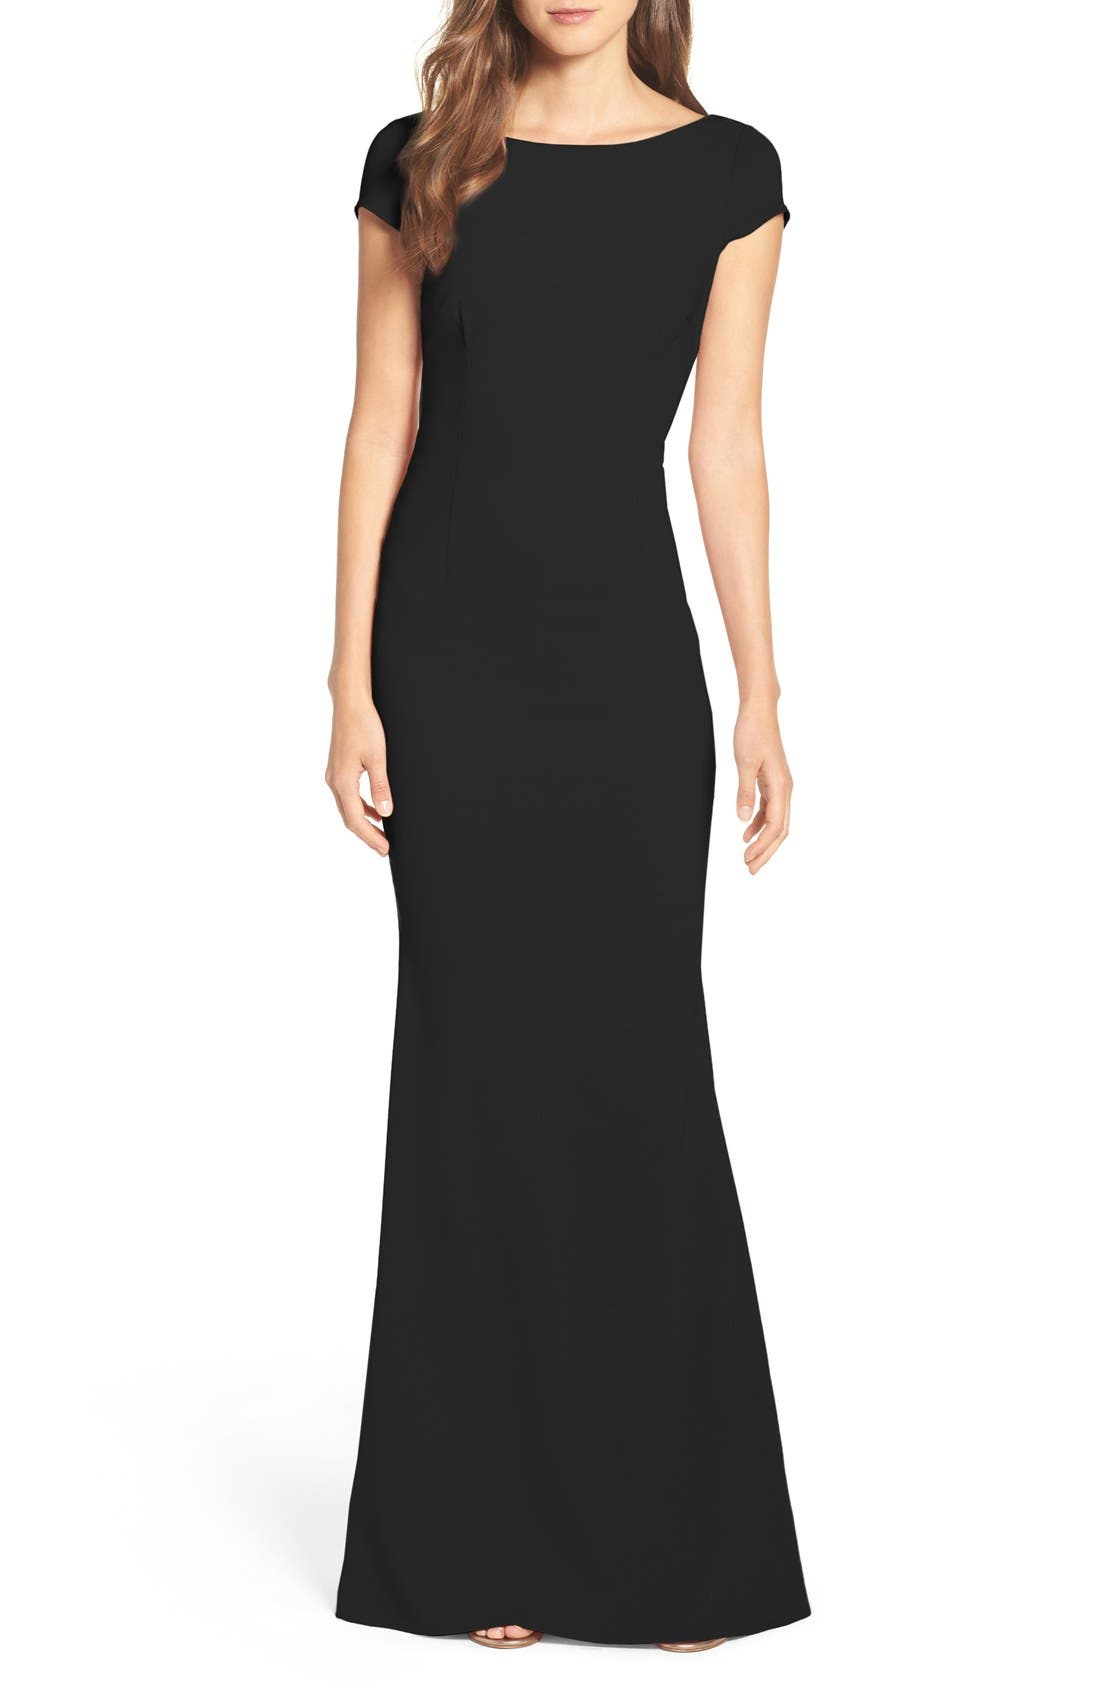 Intrigue Plunge Knot Back Gown,                             Main thumbnail 1, color,                             BLACK